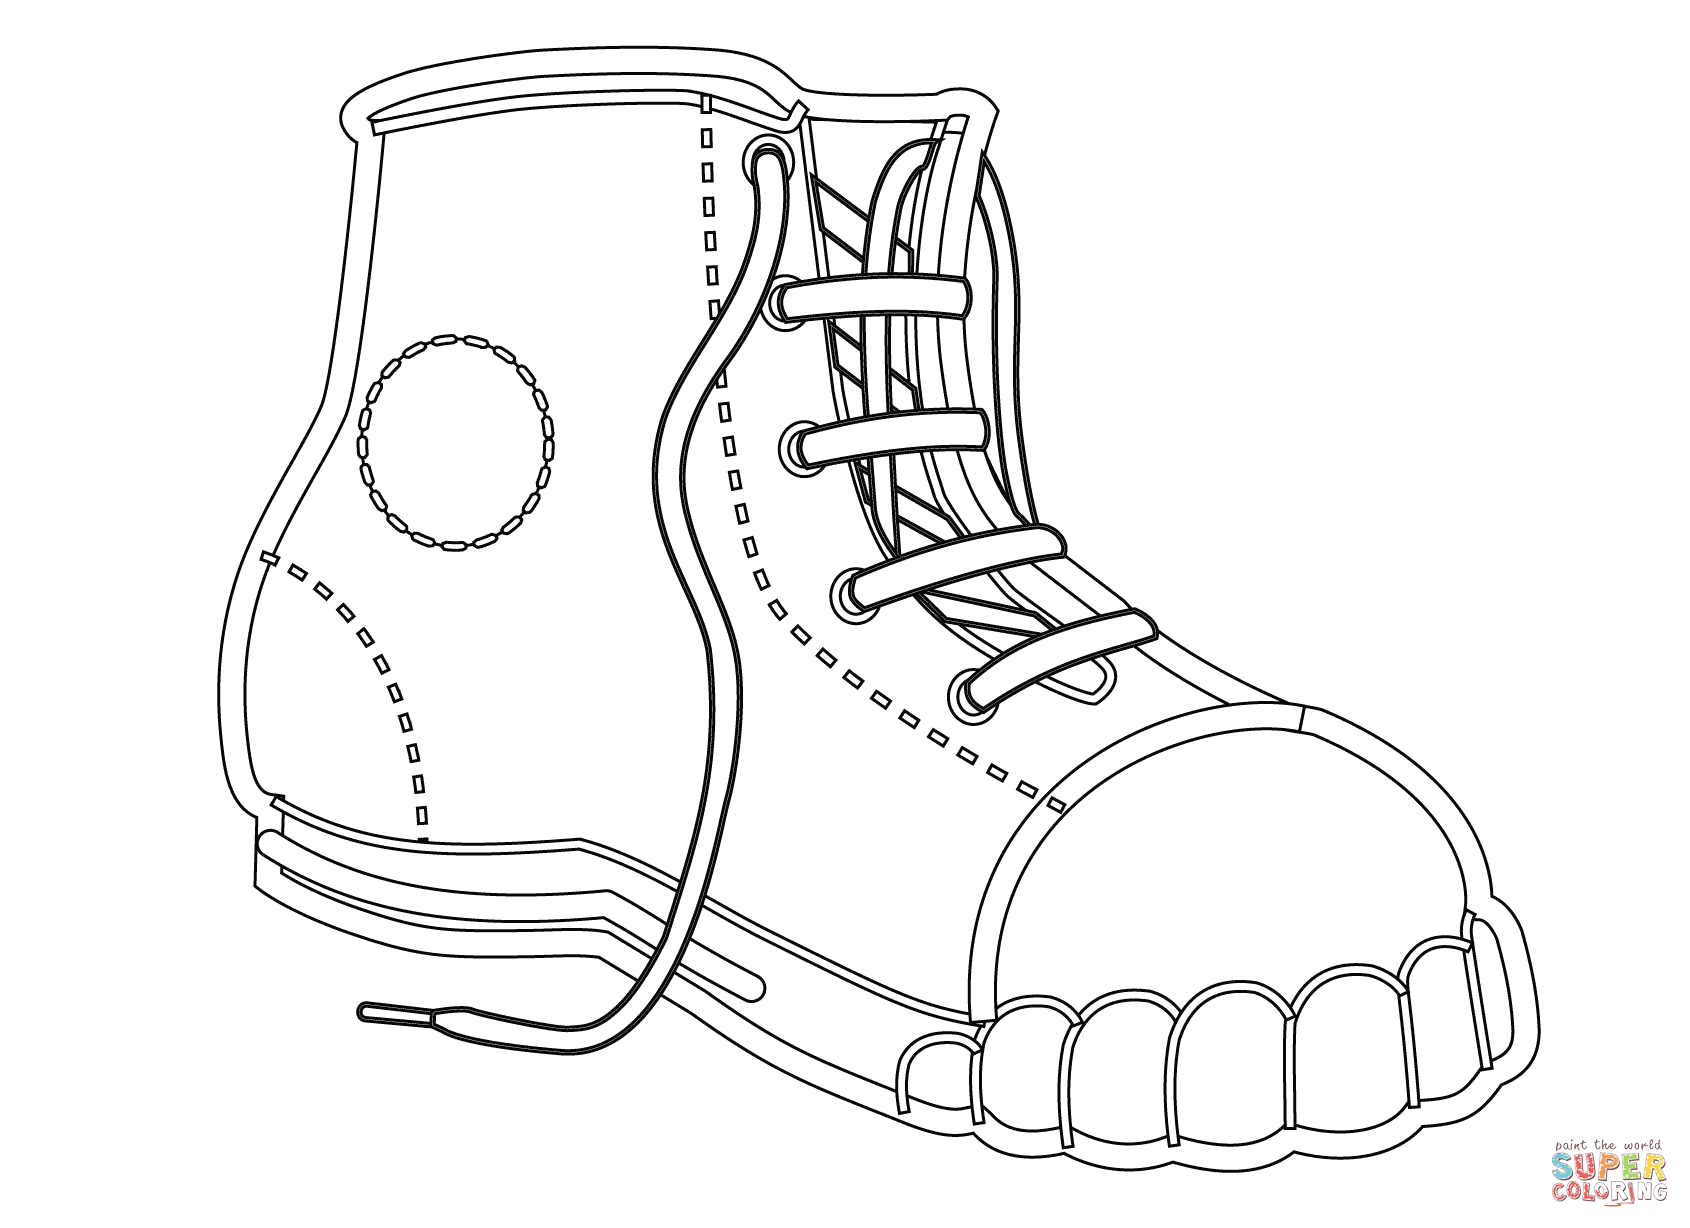 images of shoes to color shoe coloring pages to download and print for free of images shoes color to